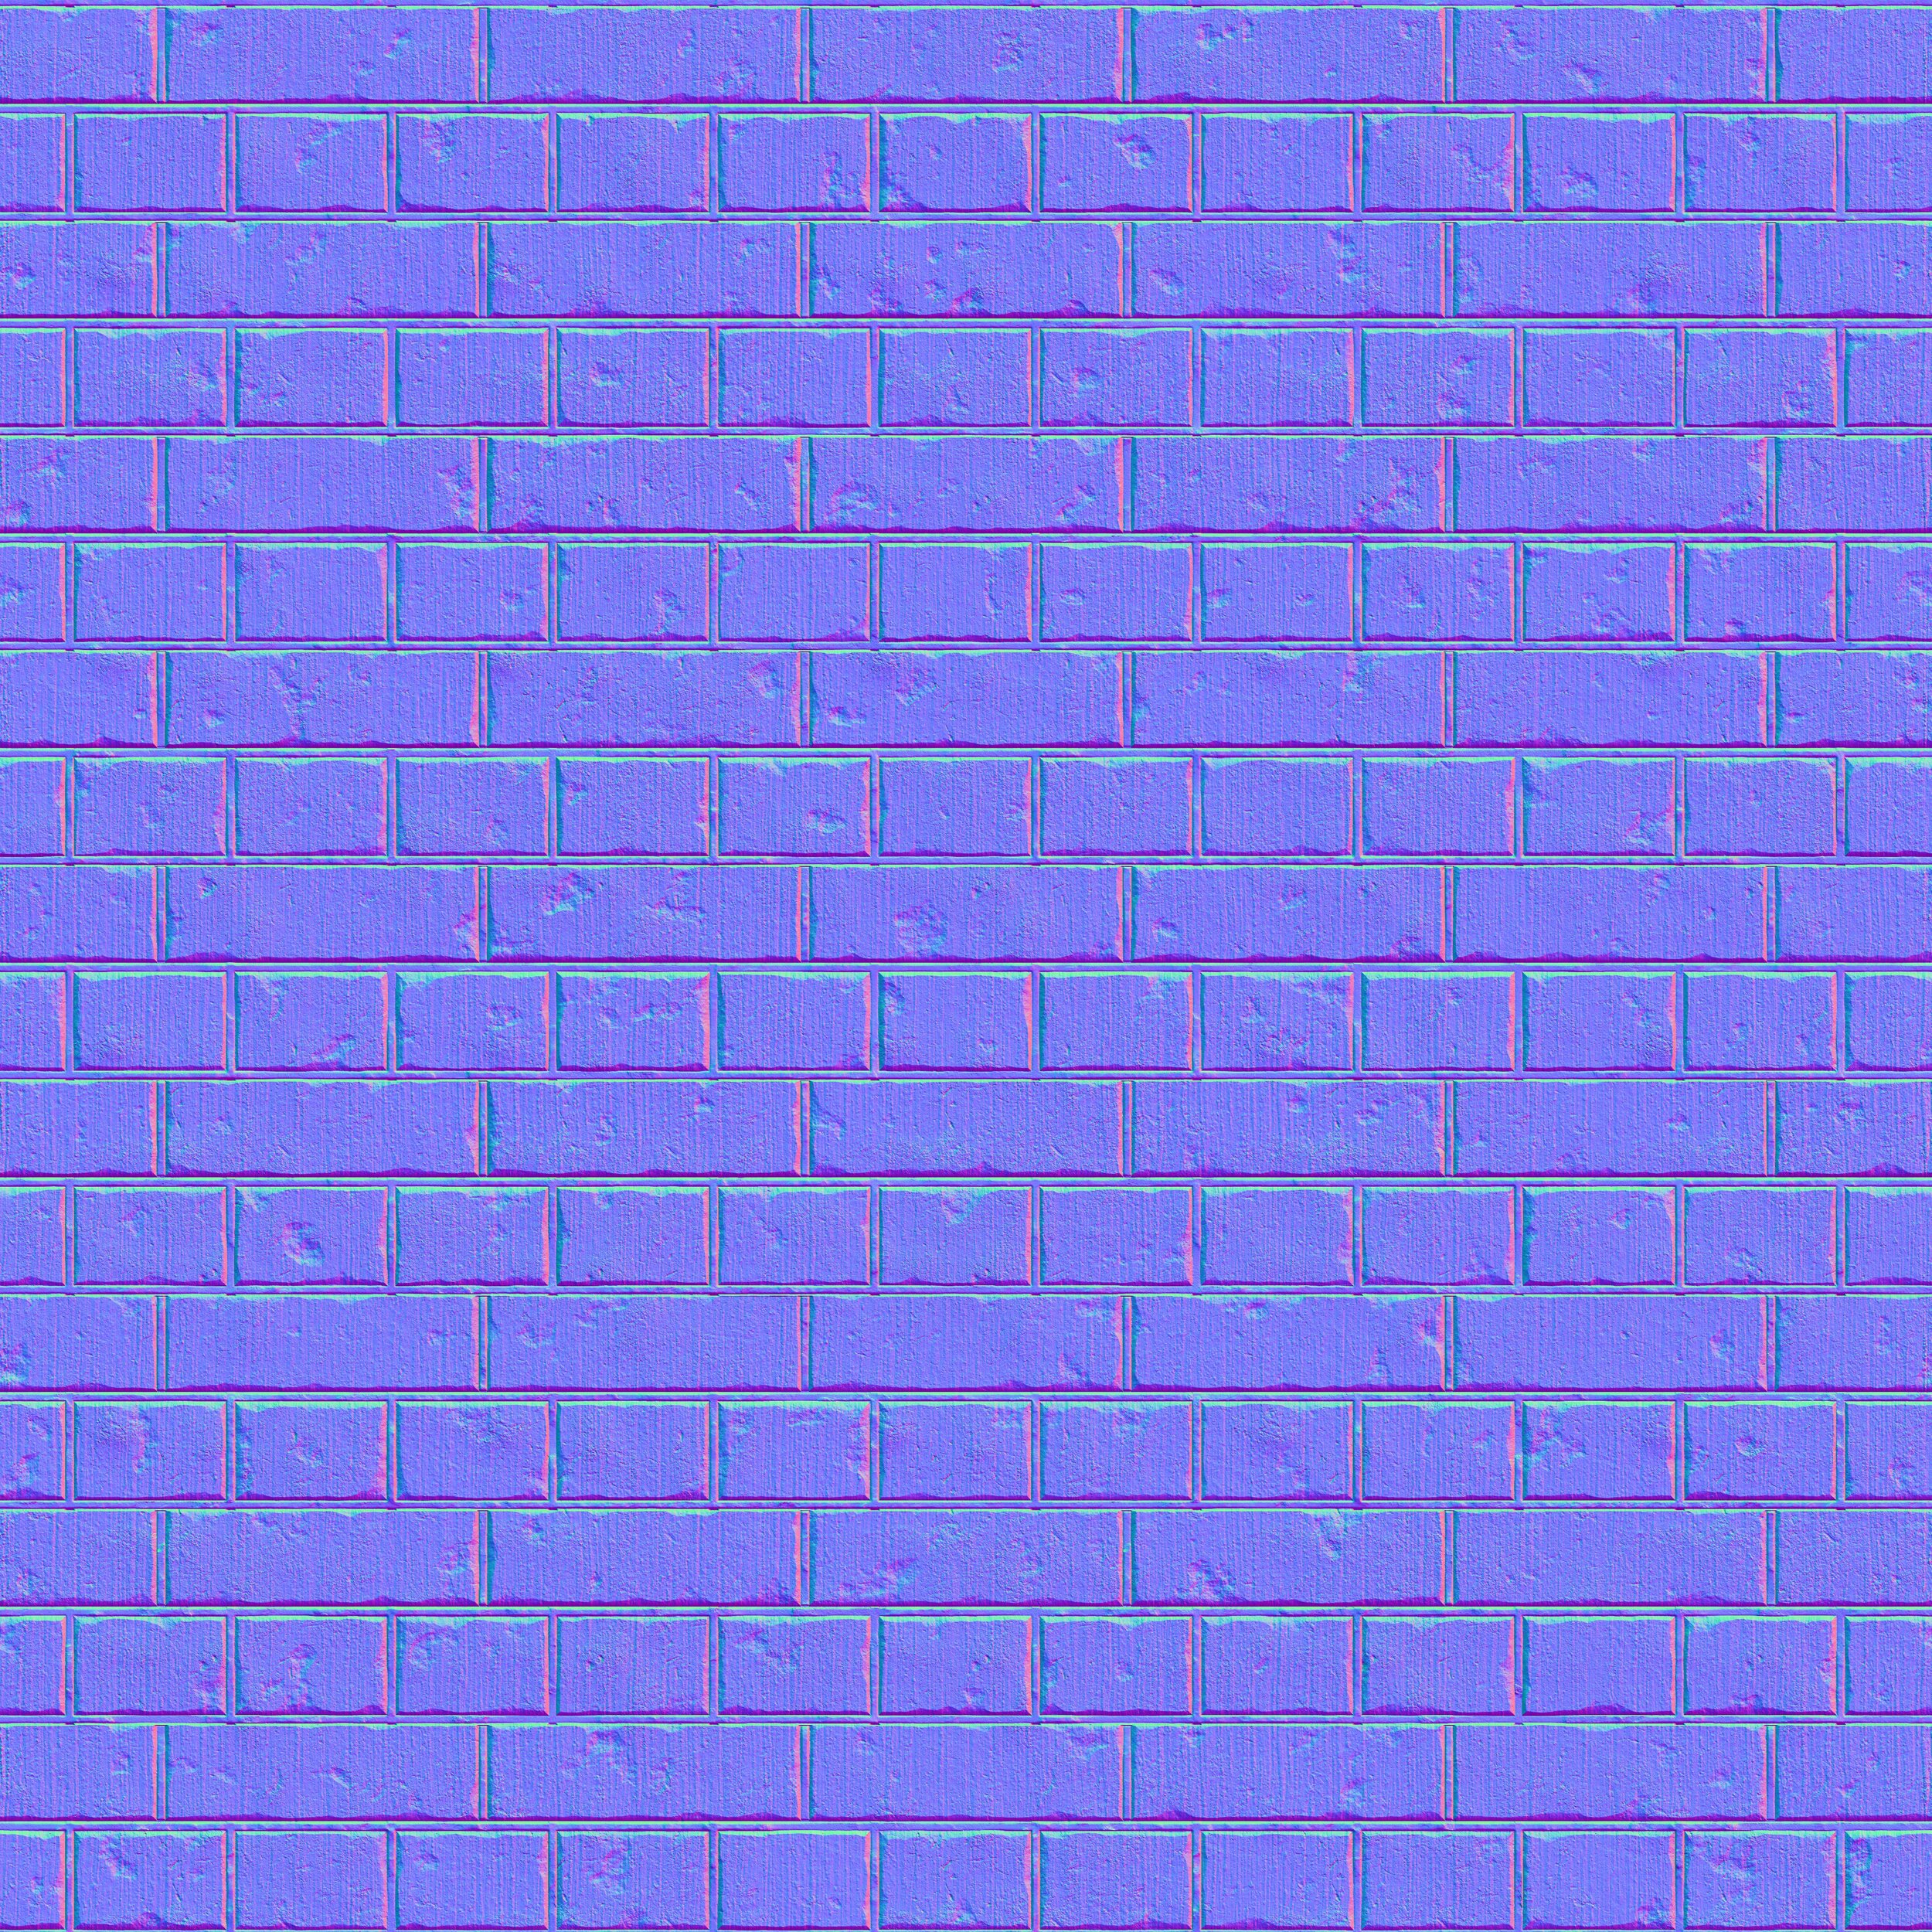 Bricks_AI_01C_Buff_NRM.jpg